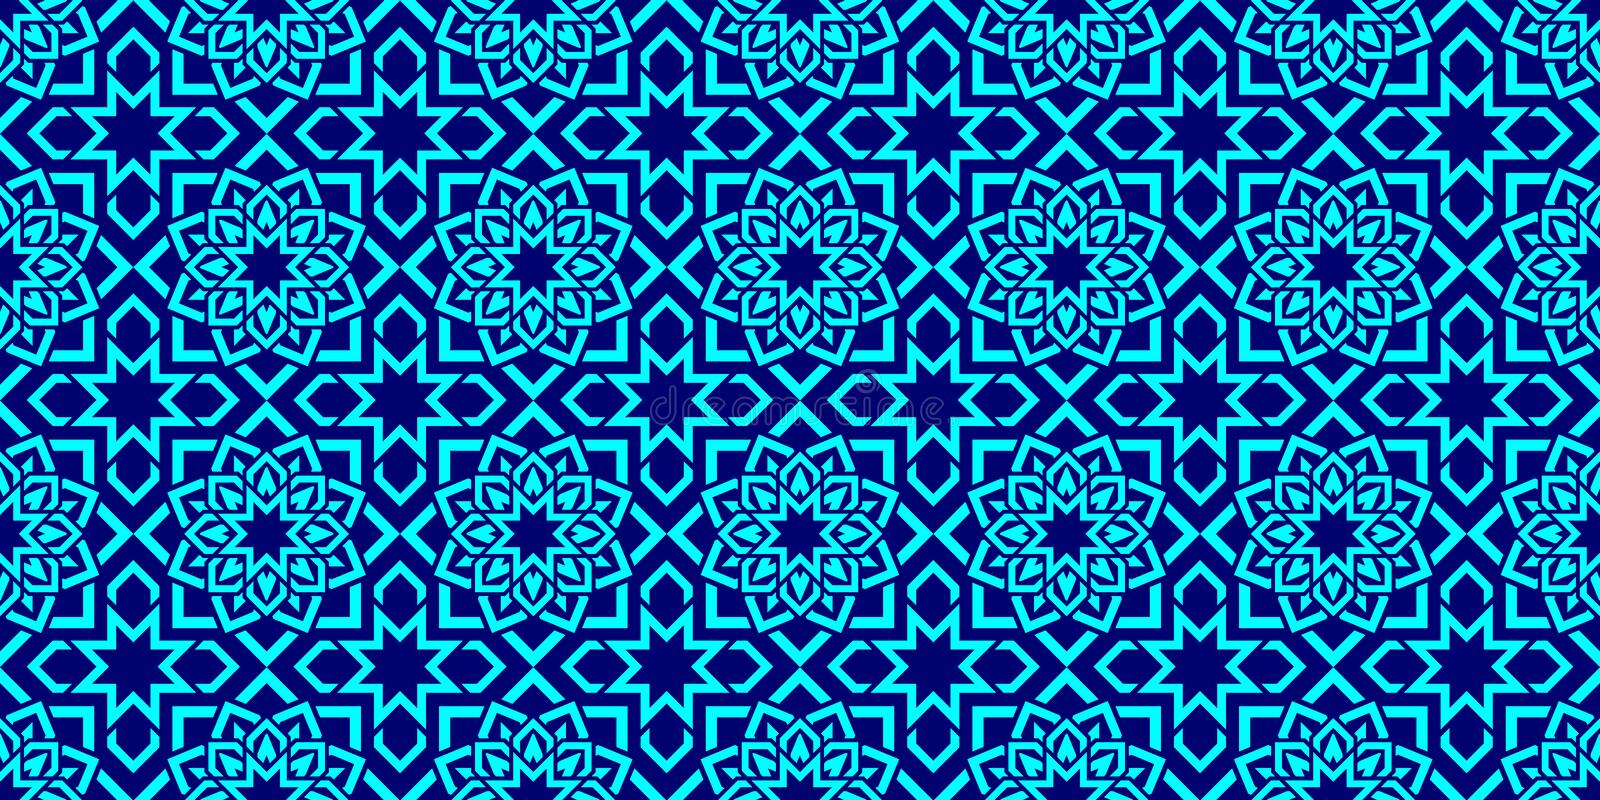 Islamic background. Arabic repeat texture. geometric seamless pattern. Elegant textures in eastern style. Bright colors. Fl. Owers wallpaper for textile, fabric stock illustration